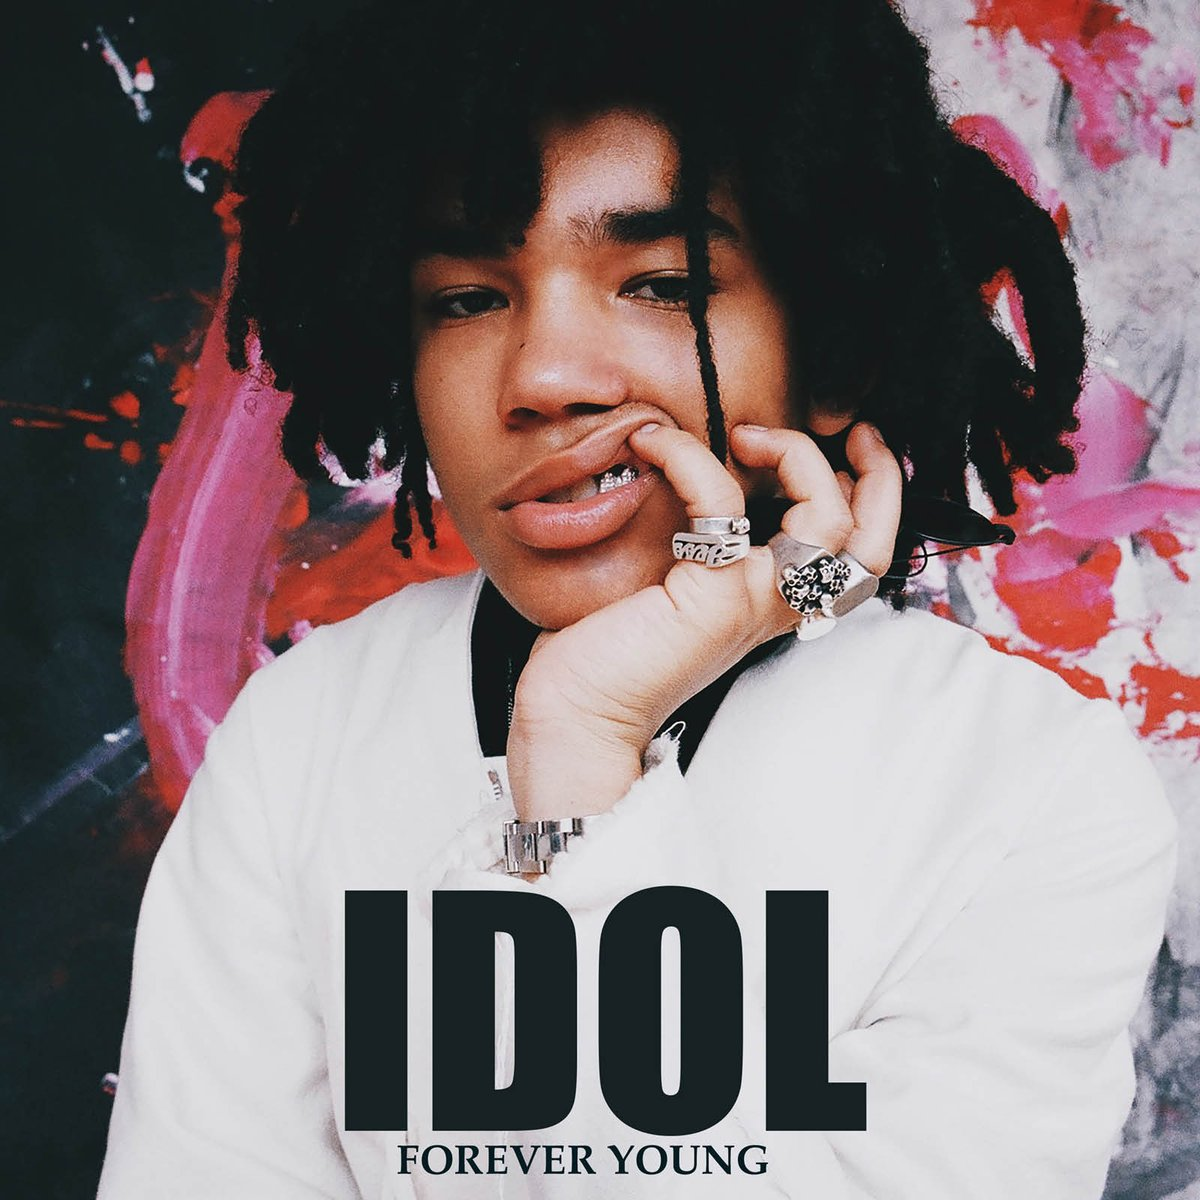 Luka Sabbat In Our Overall From Autumn - Winter 2016 Collection On The Cover Of IDOL Magazine. https://t.co/kJzFLM0epe